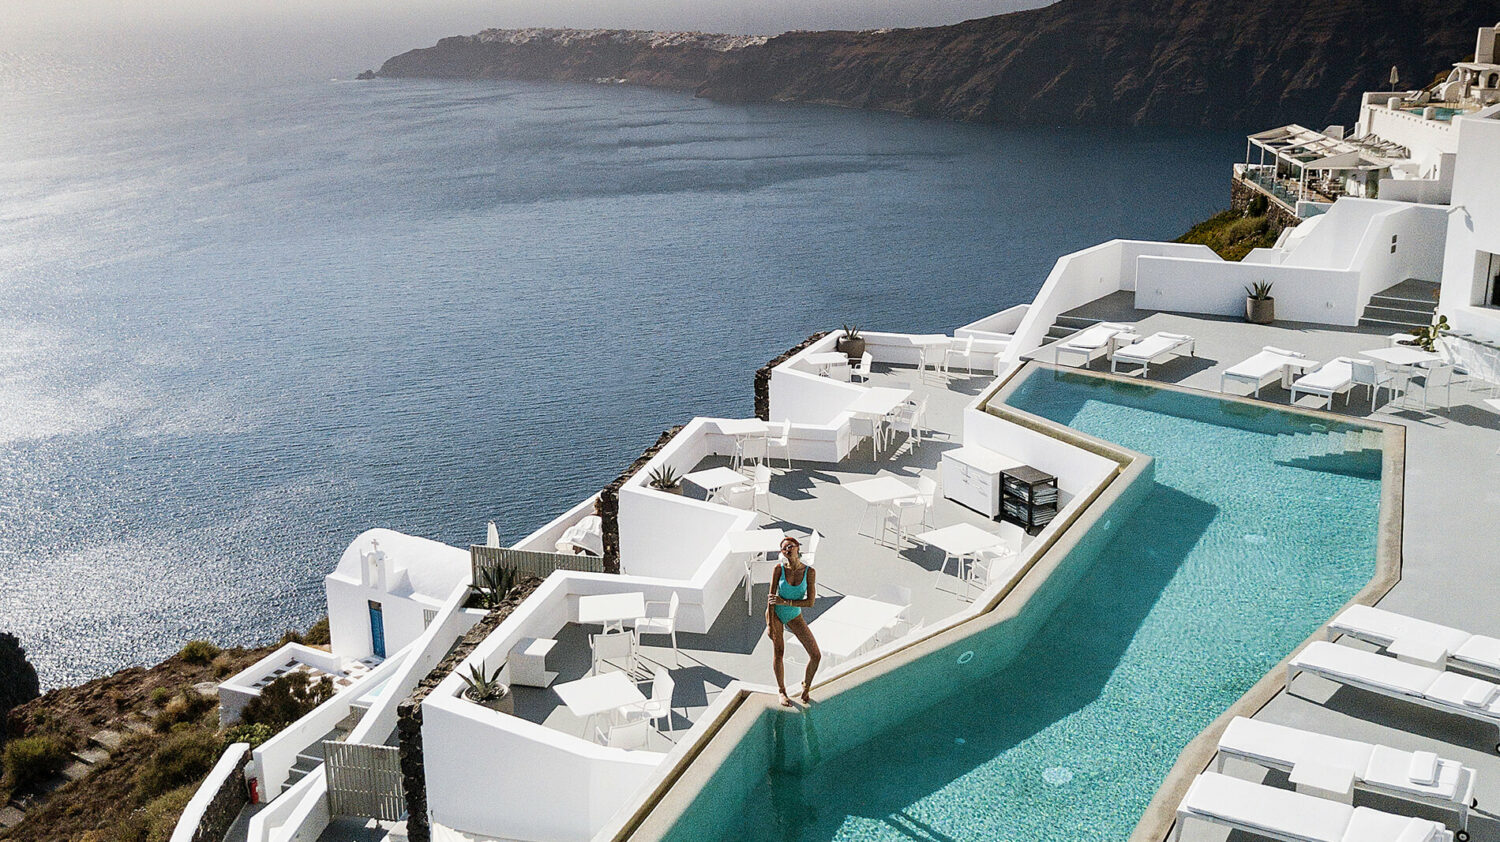 grace hotel, auberge resorts collection greece-overview-hotel